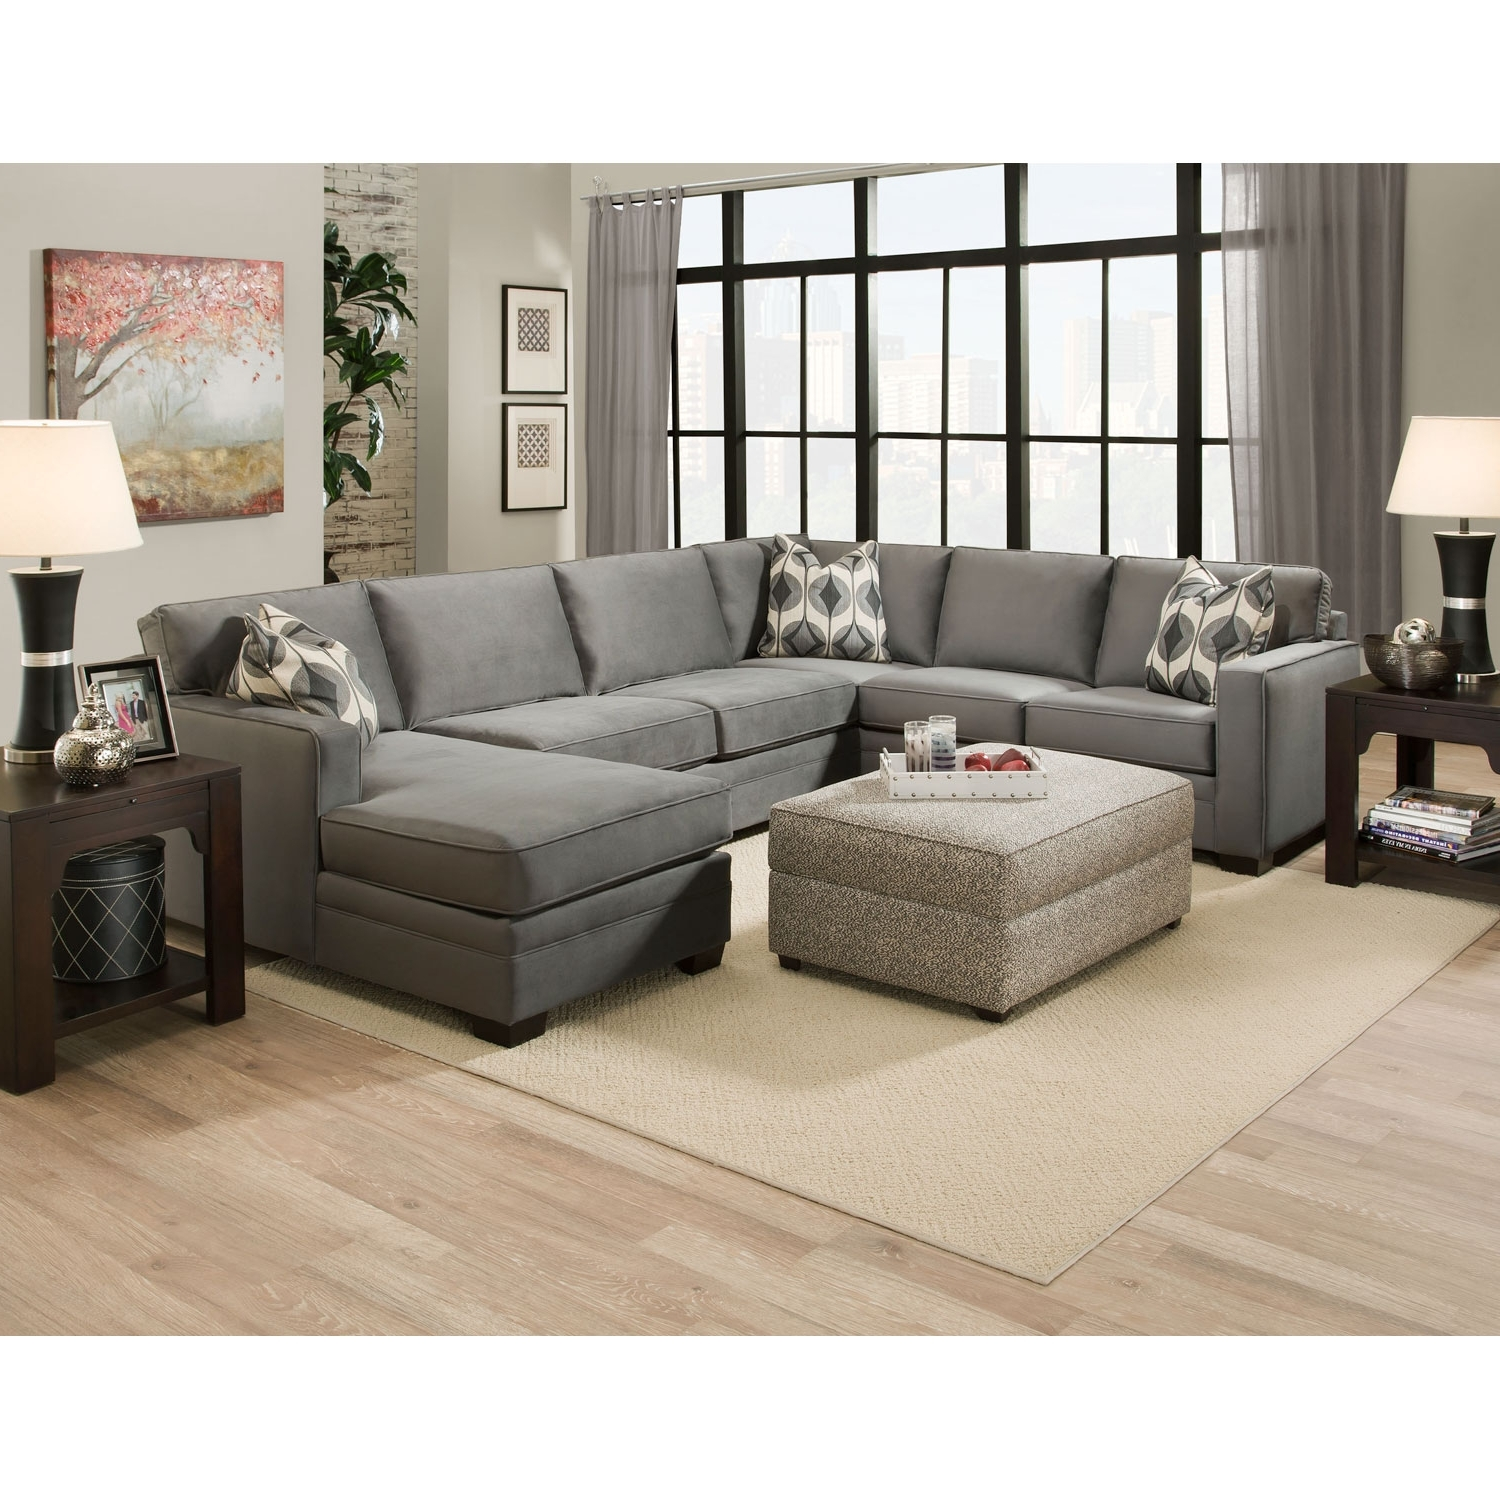 Gray Extra Large U Shaped Sectional Sofa With Chaise And Accent Intended For 2019 Extra Large U Shaped Sectionals (Gallery 5 of 20)